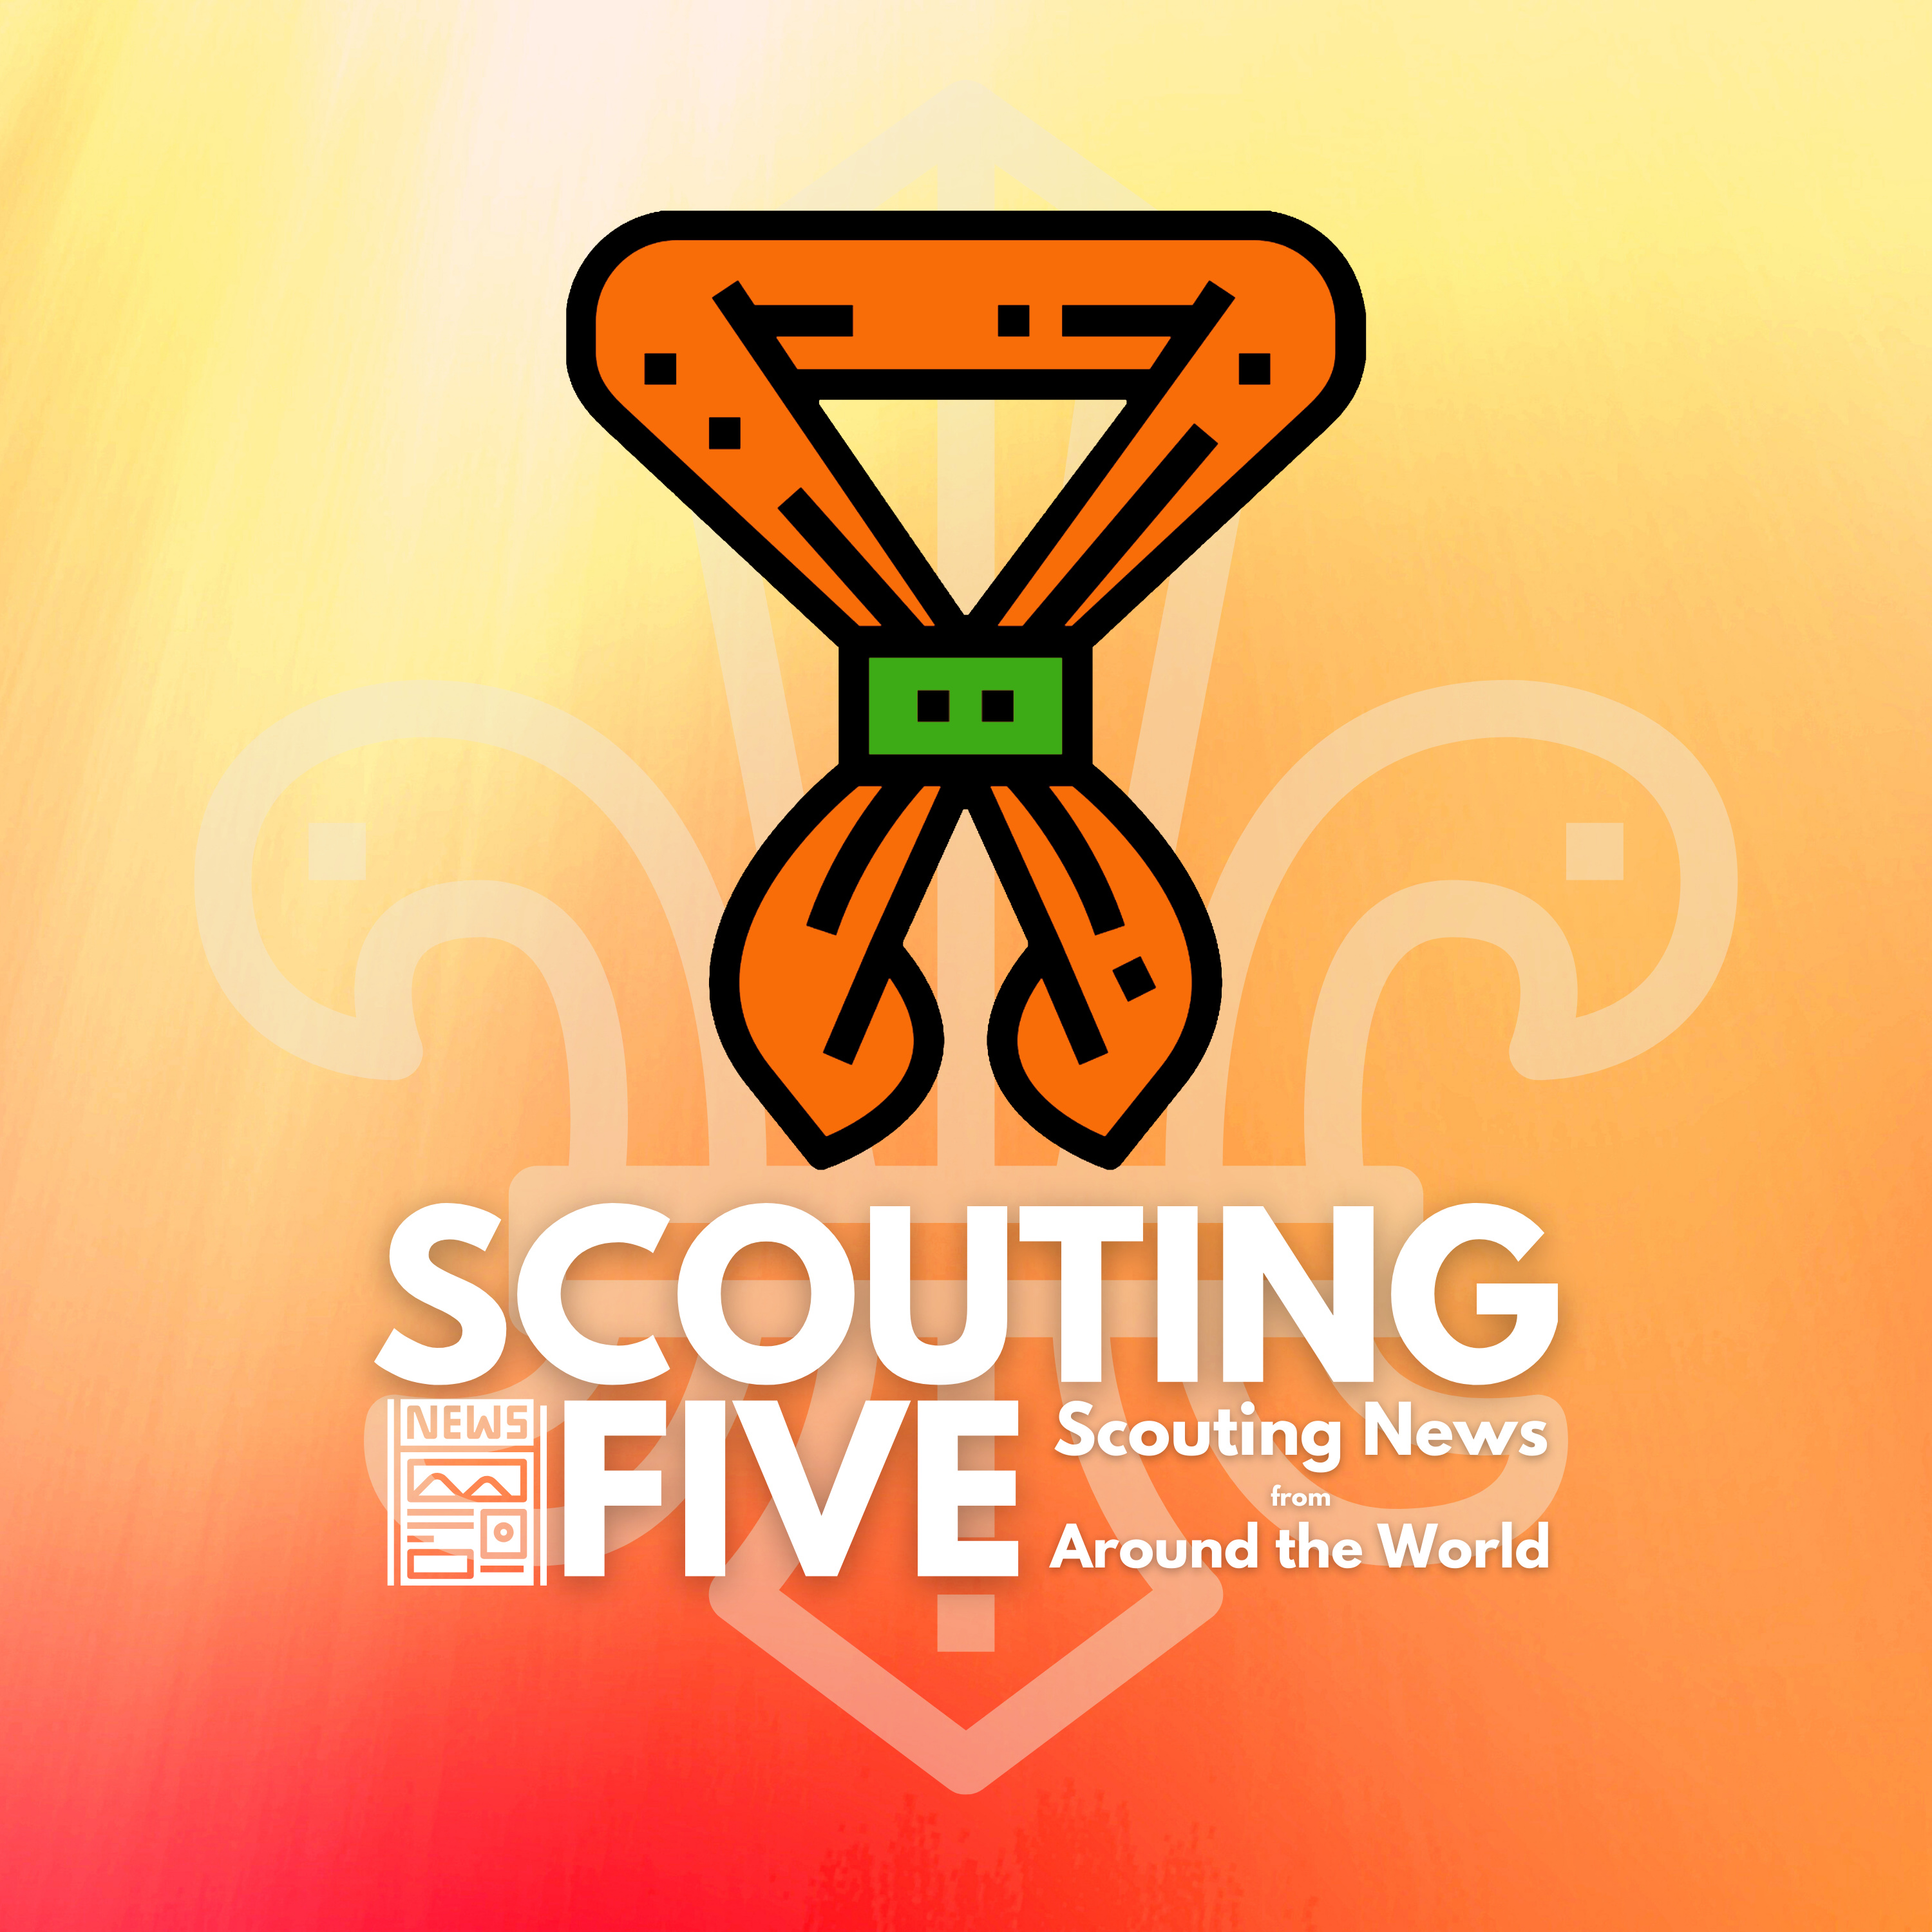 Scouting Five - Week of March 8, 2021